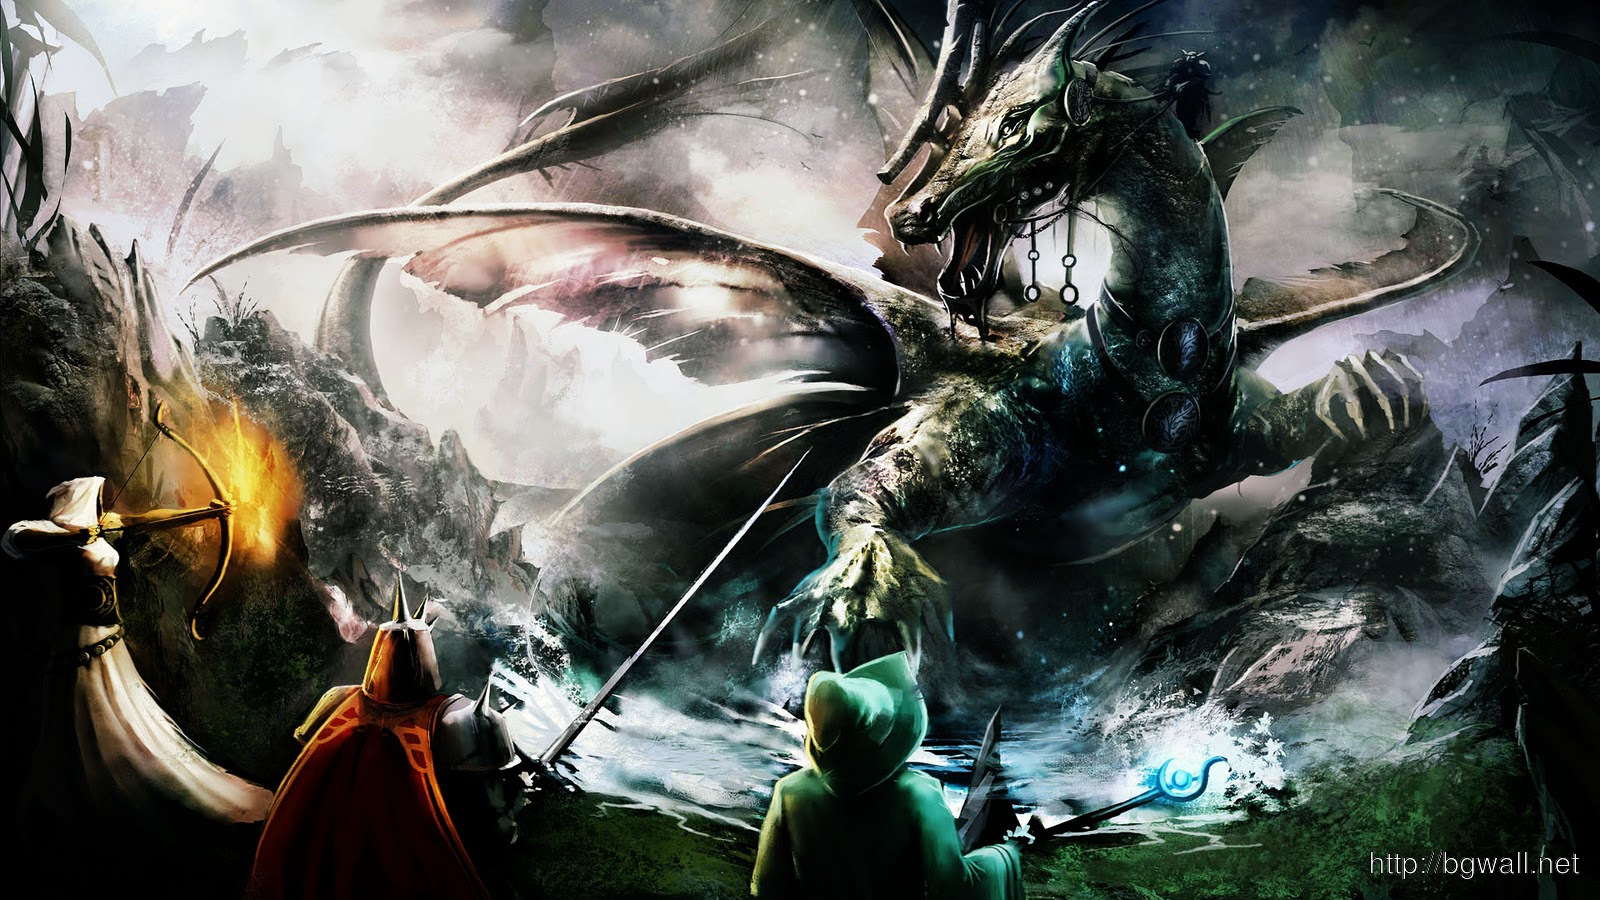 Trine Dragon Battle Hd Games Wallpapers Widescreen 1600x900 Pixel Full Size